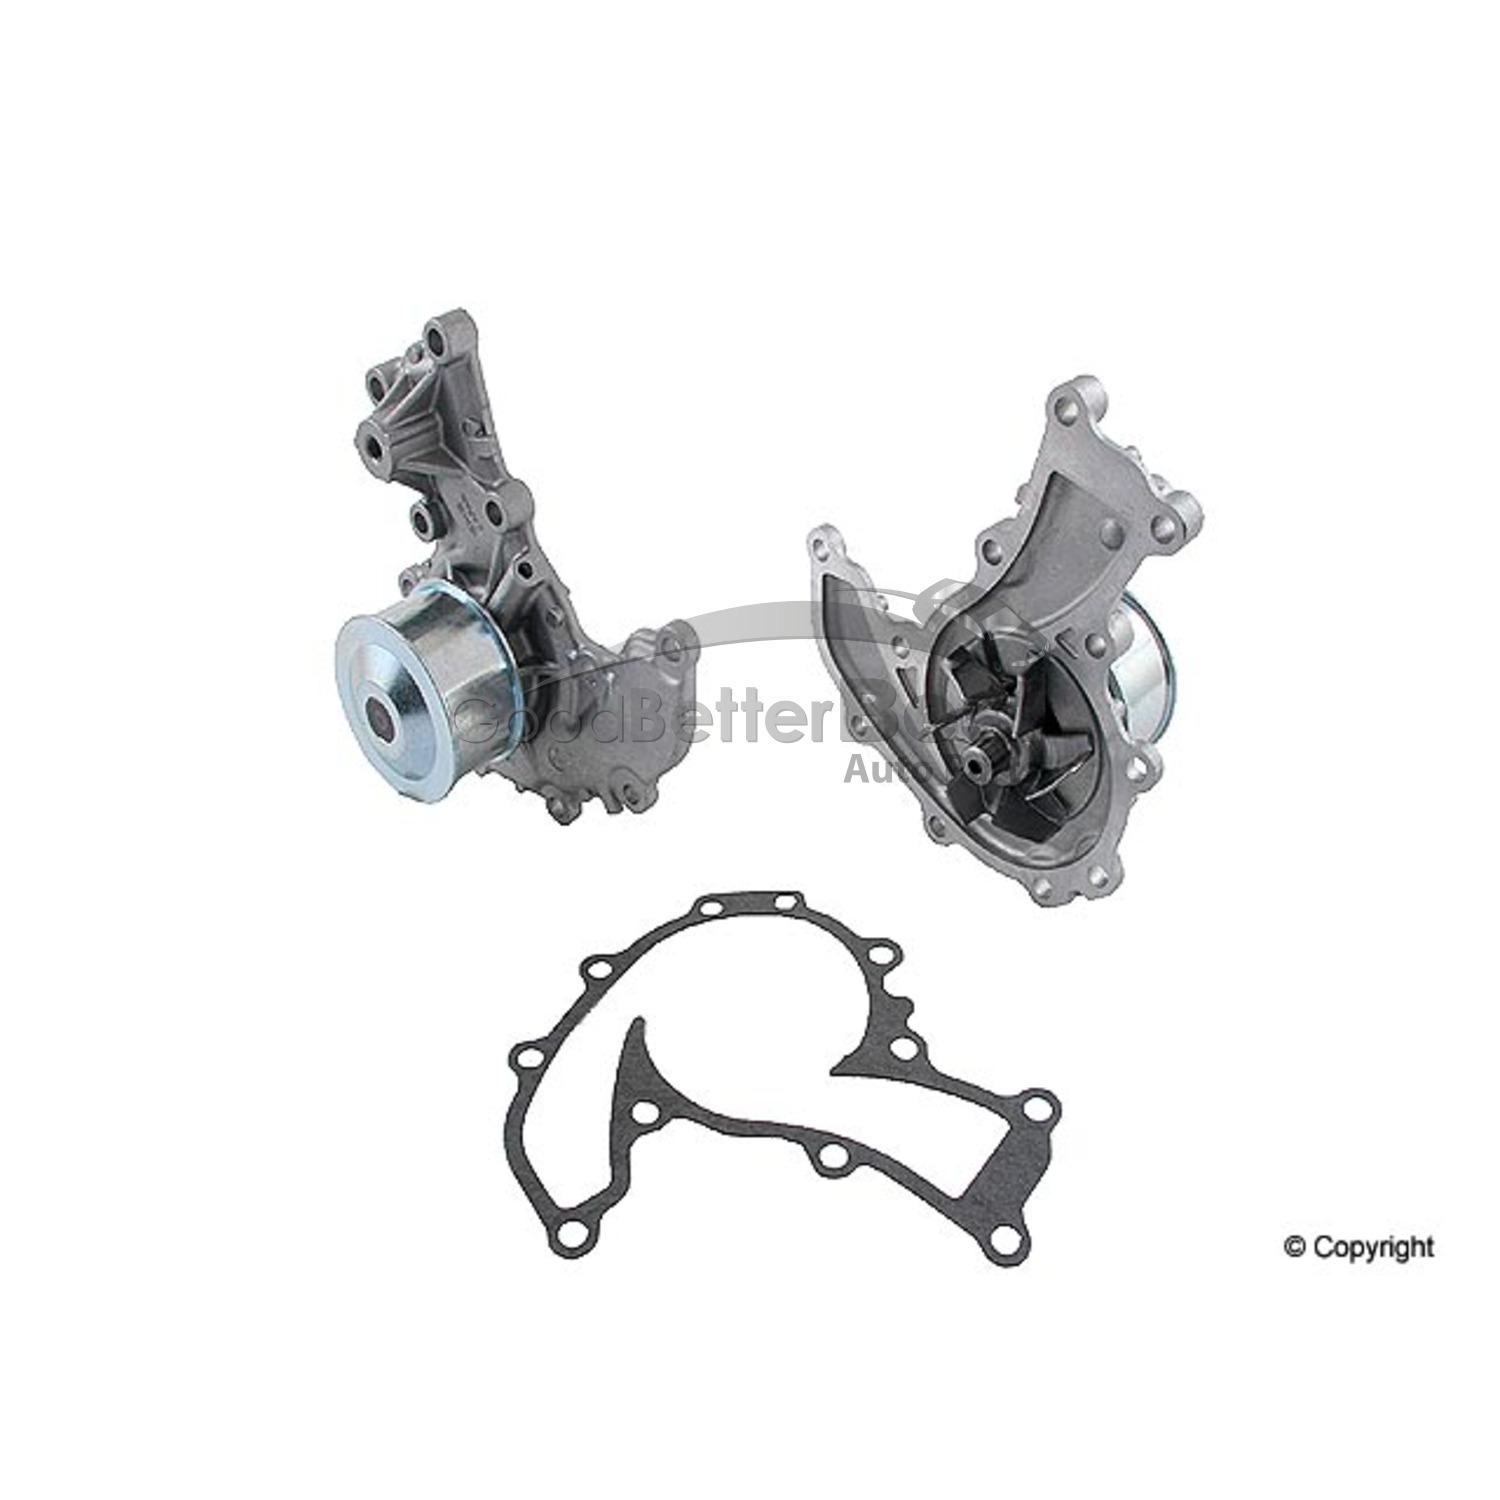 One New Gmb Engine Water Pump For Honda